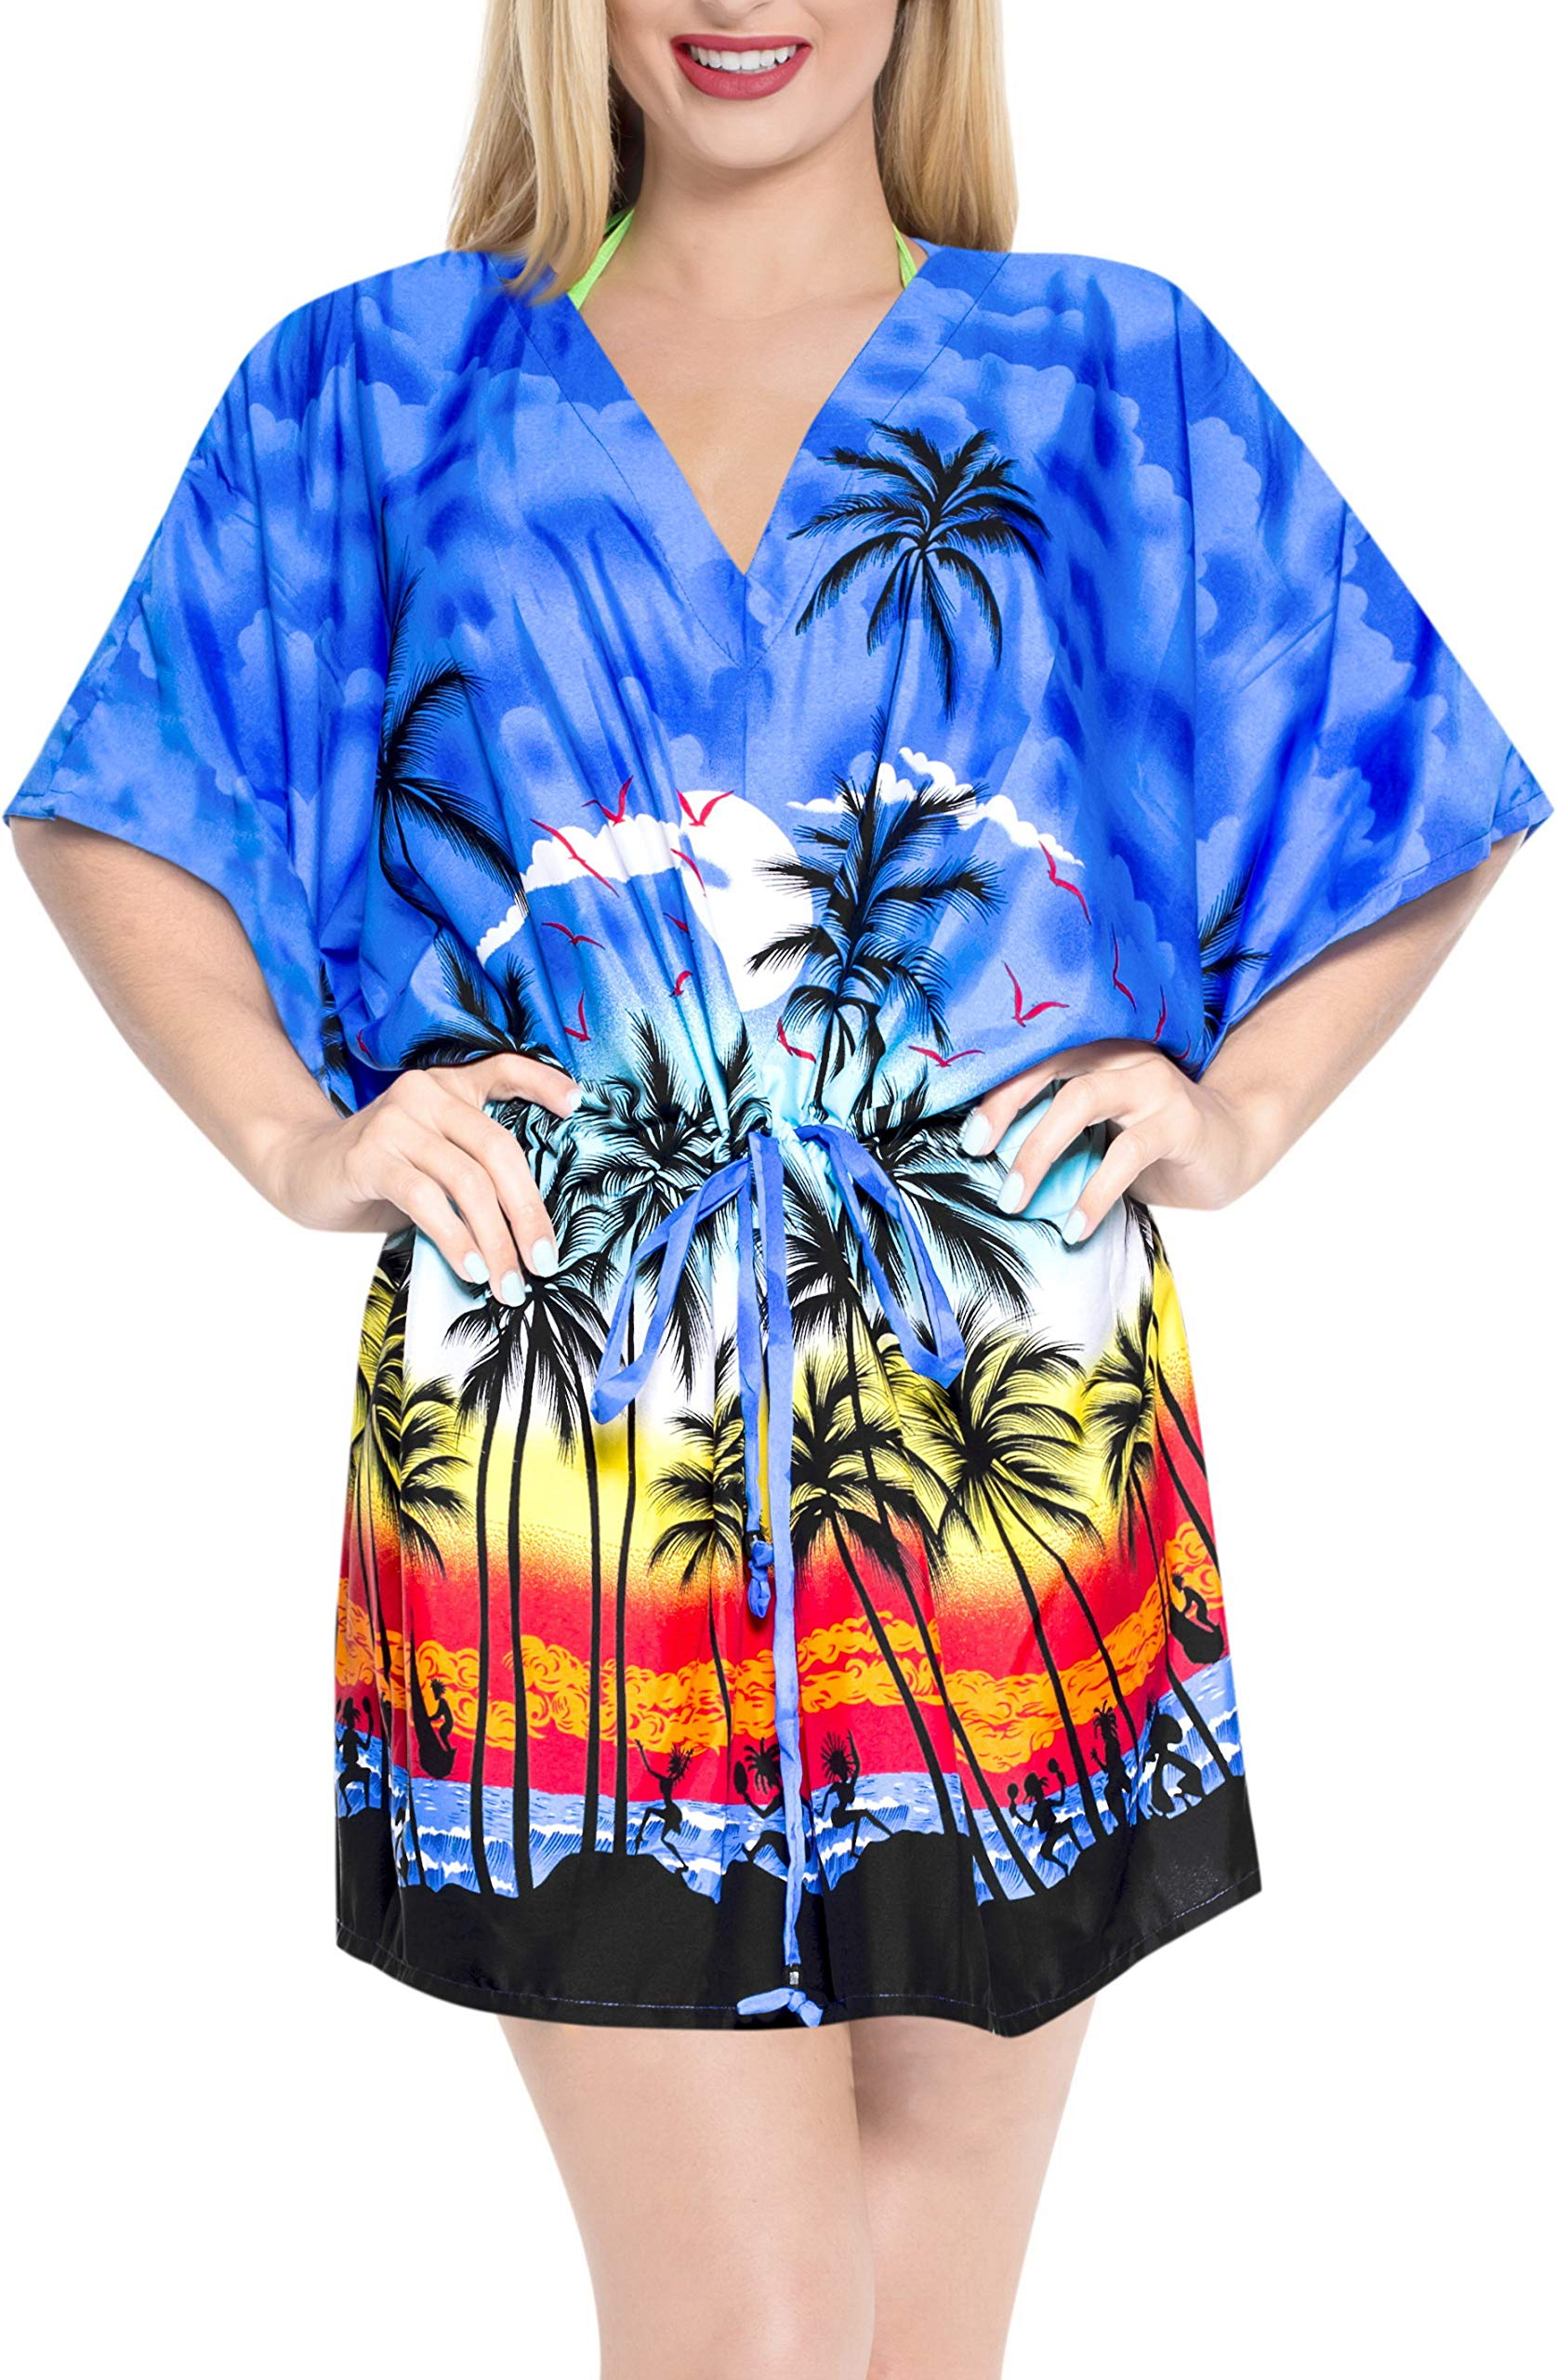 Available at Amazon: LA LEELA Men's Relaxed Short Sleeve Button Down Casual Hawaiian Shirt Printed D